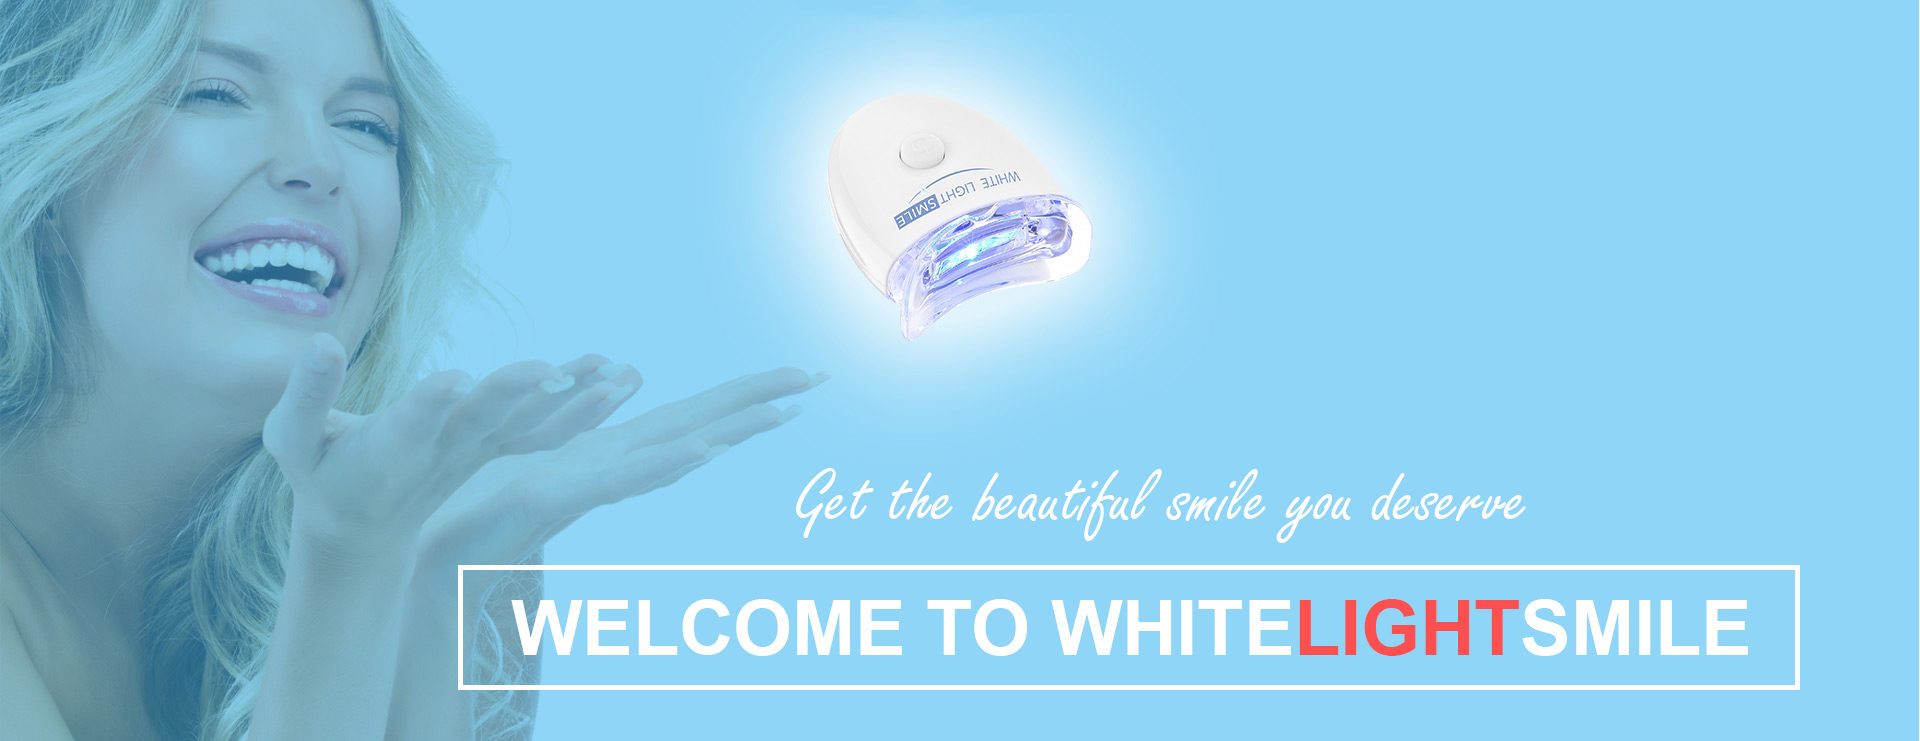 White Light Smile Reviews